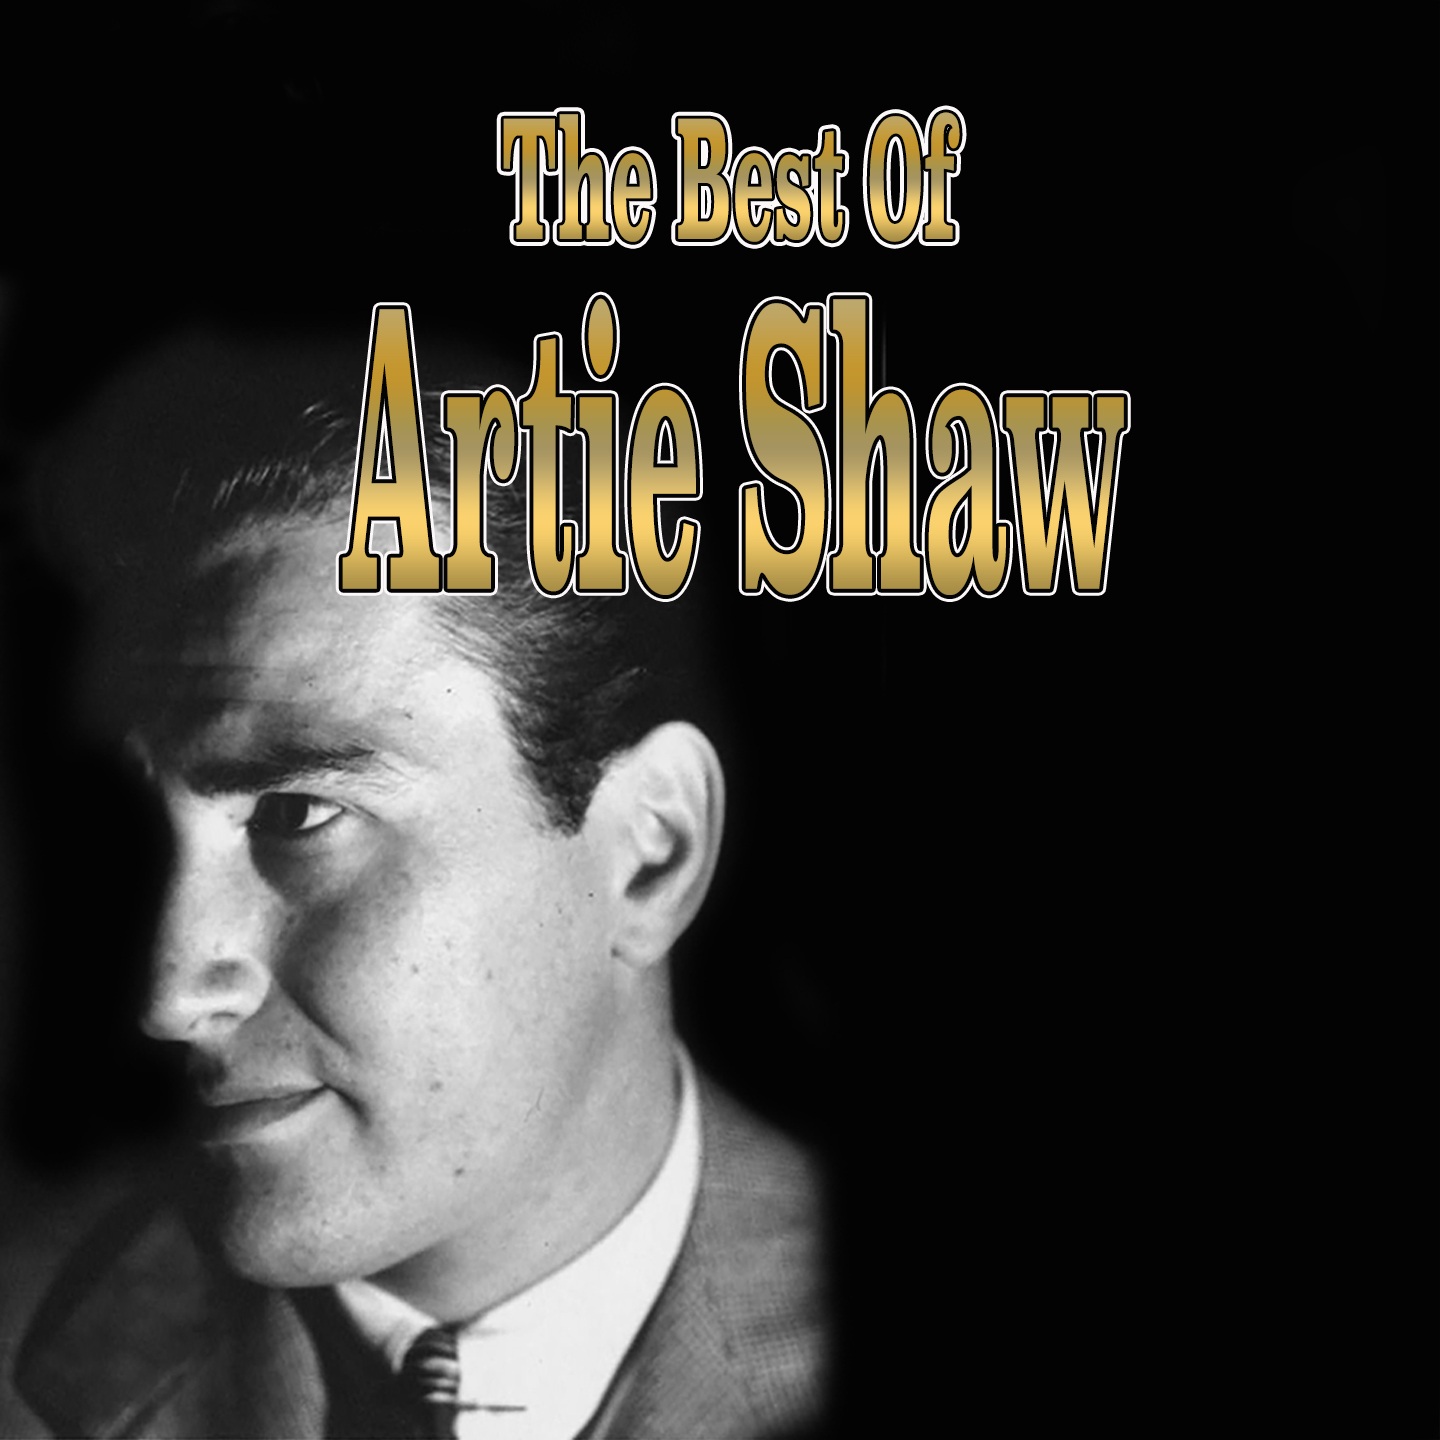 The Best of Artie Shaw